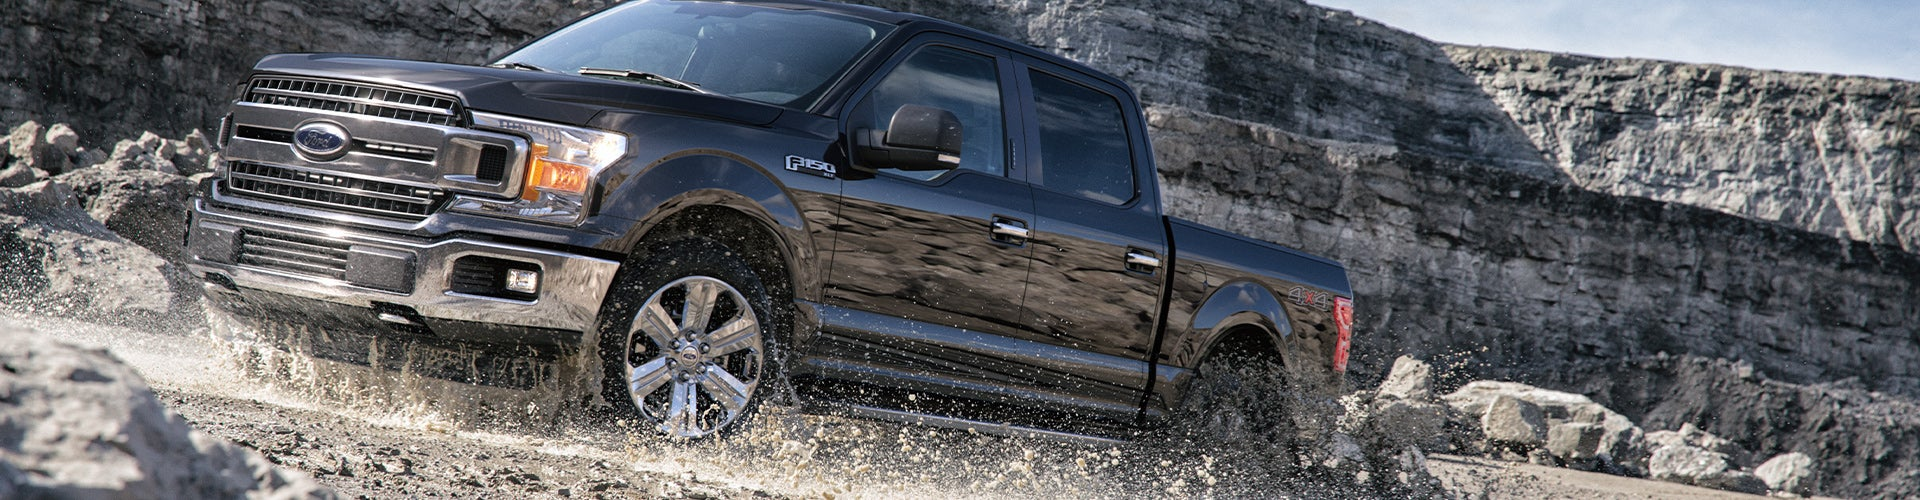 2019 Ford F-150 | McCandless Ford Meadville, My Ford Dealer